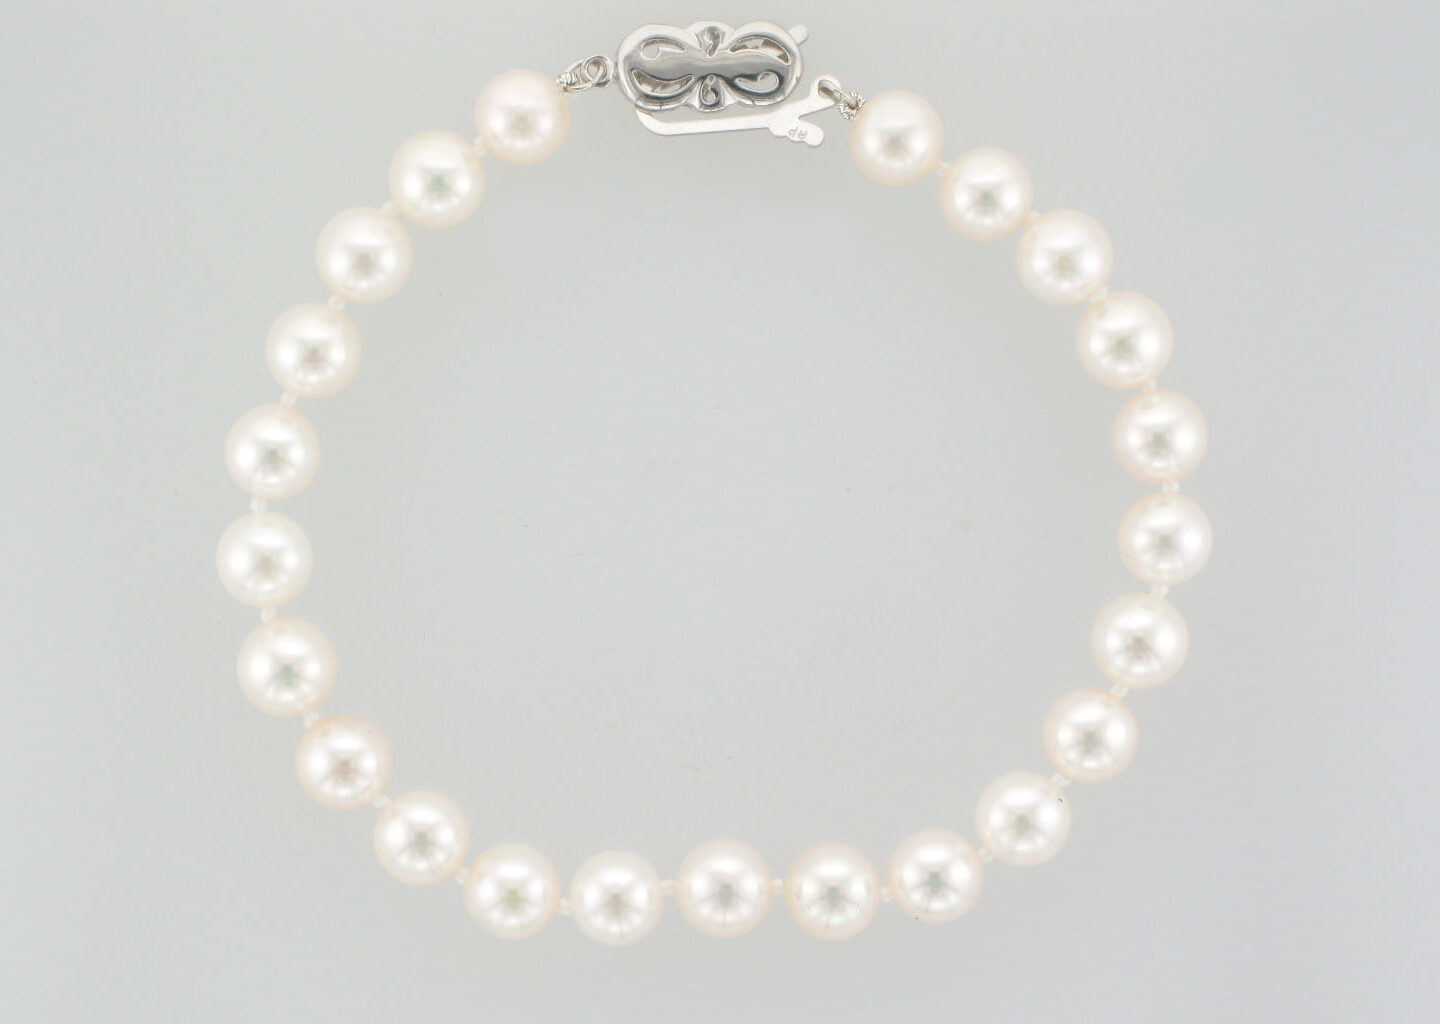 Pearl Bracelet with 18K White Gold Clasp